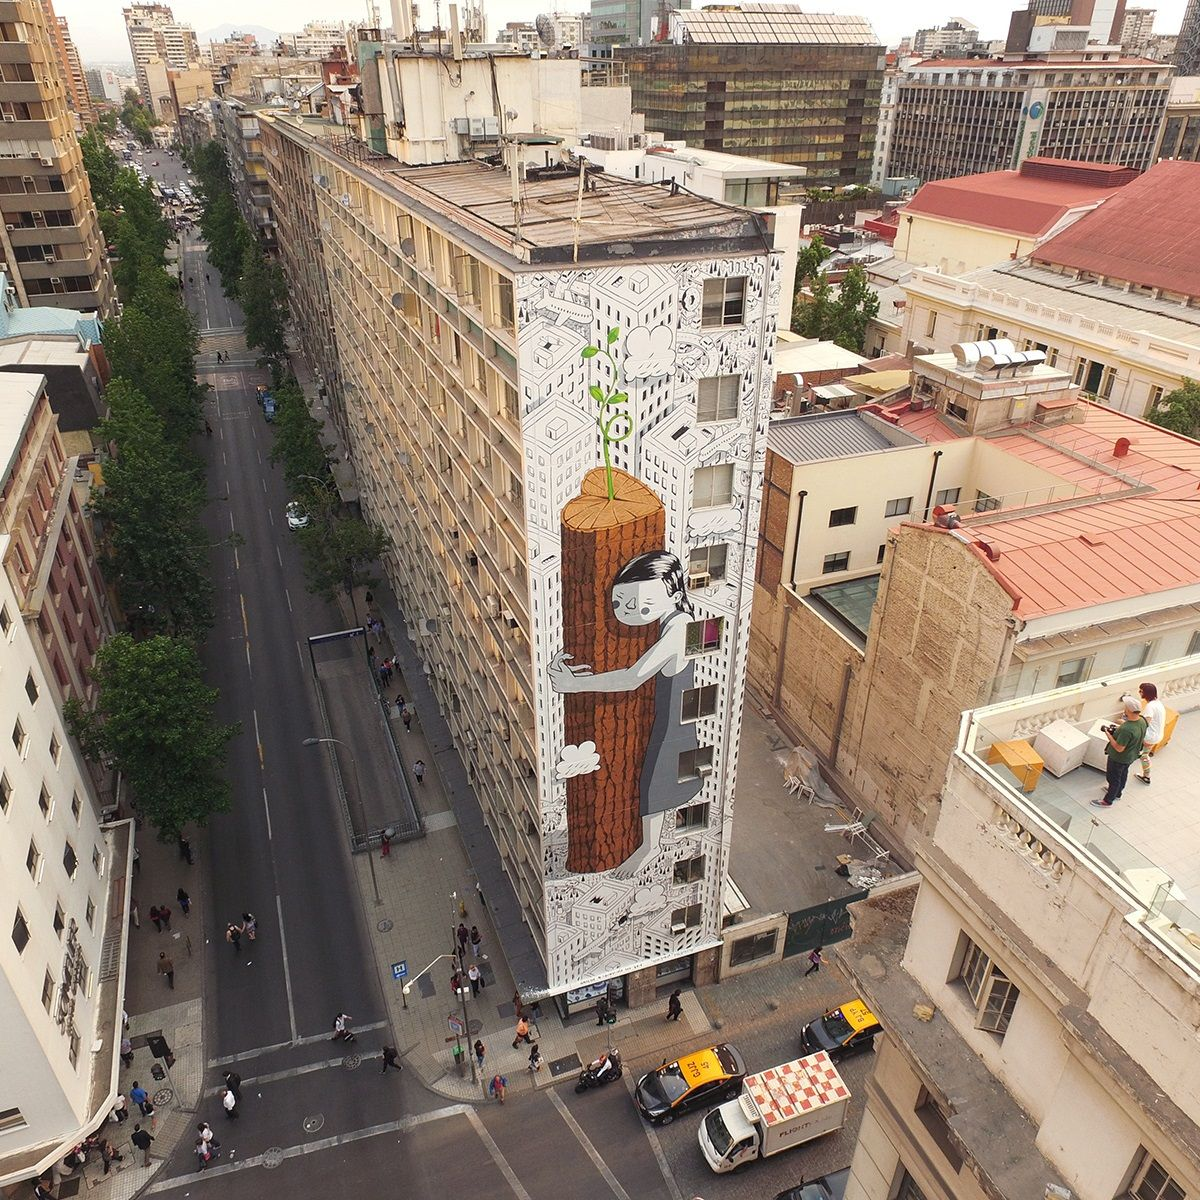 """Painting on the streets of Santiago, Italian artist, Millo once again went big with this super-sized wall which is entitled """"Never Give Up"""". The piece shows some of Millo's signature elements such as the black and white cityscape juxtaposed against a giant little girl which is hugging a heart-shaped tree."""